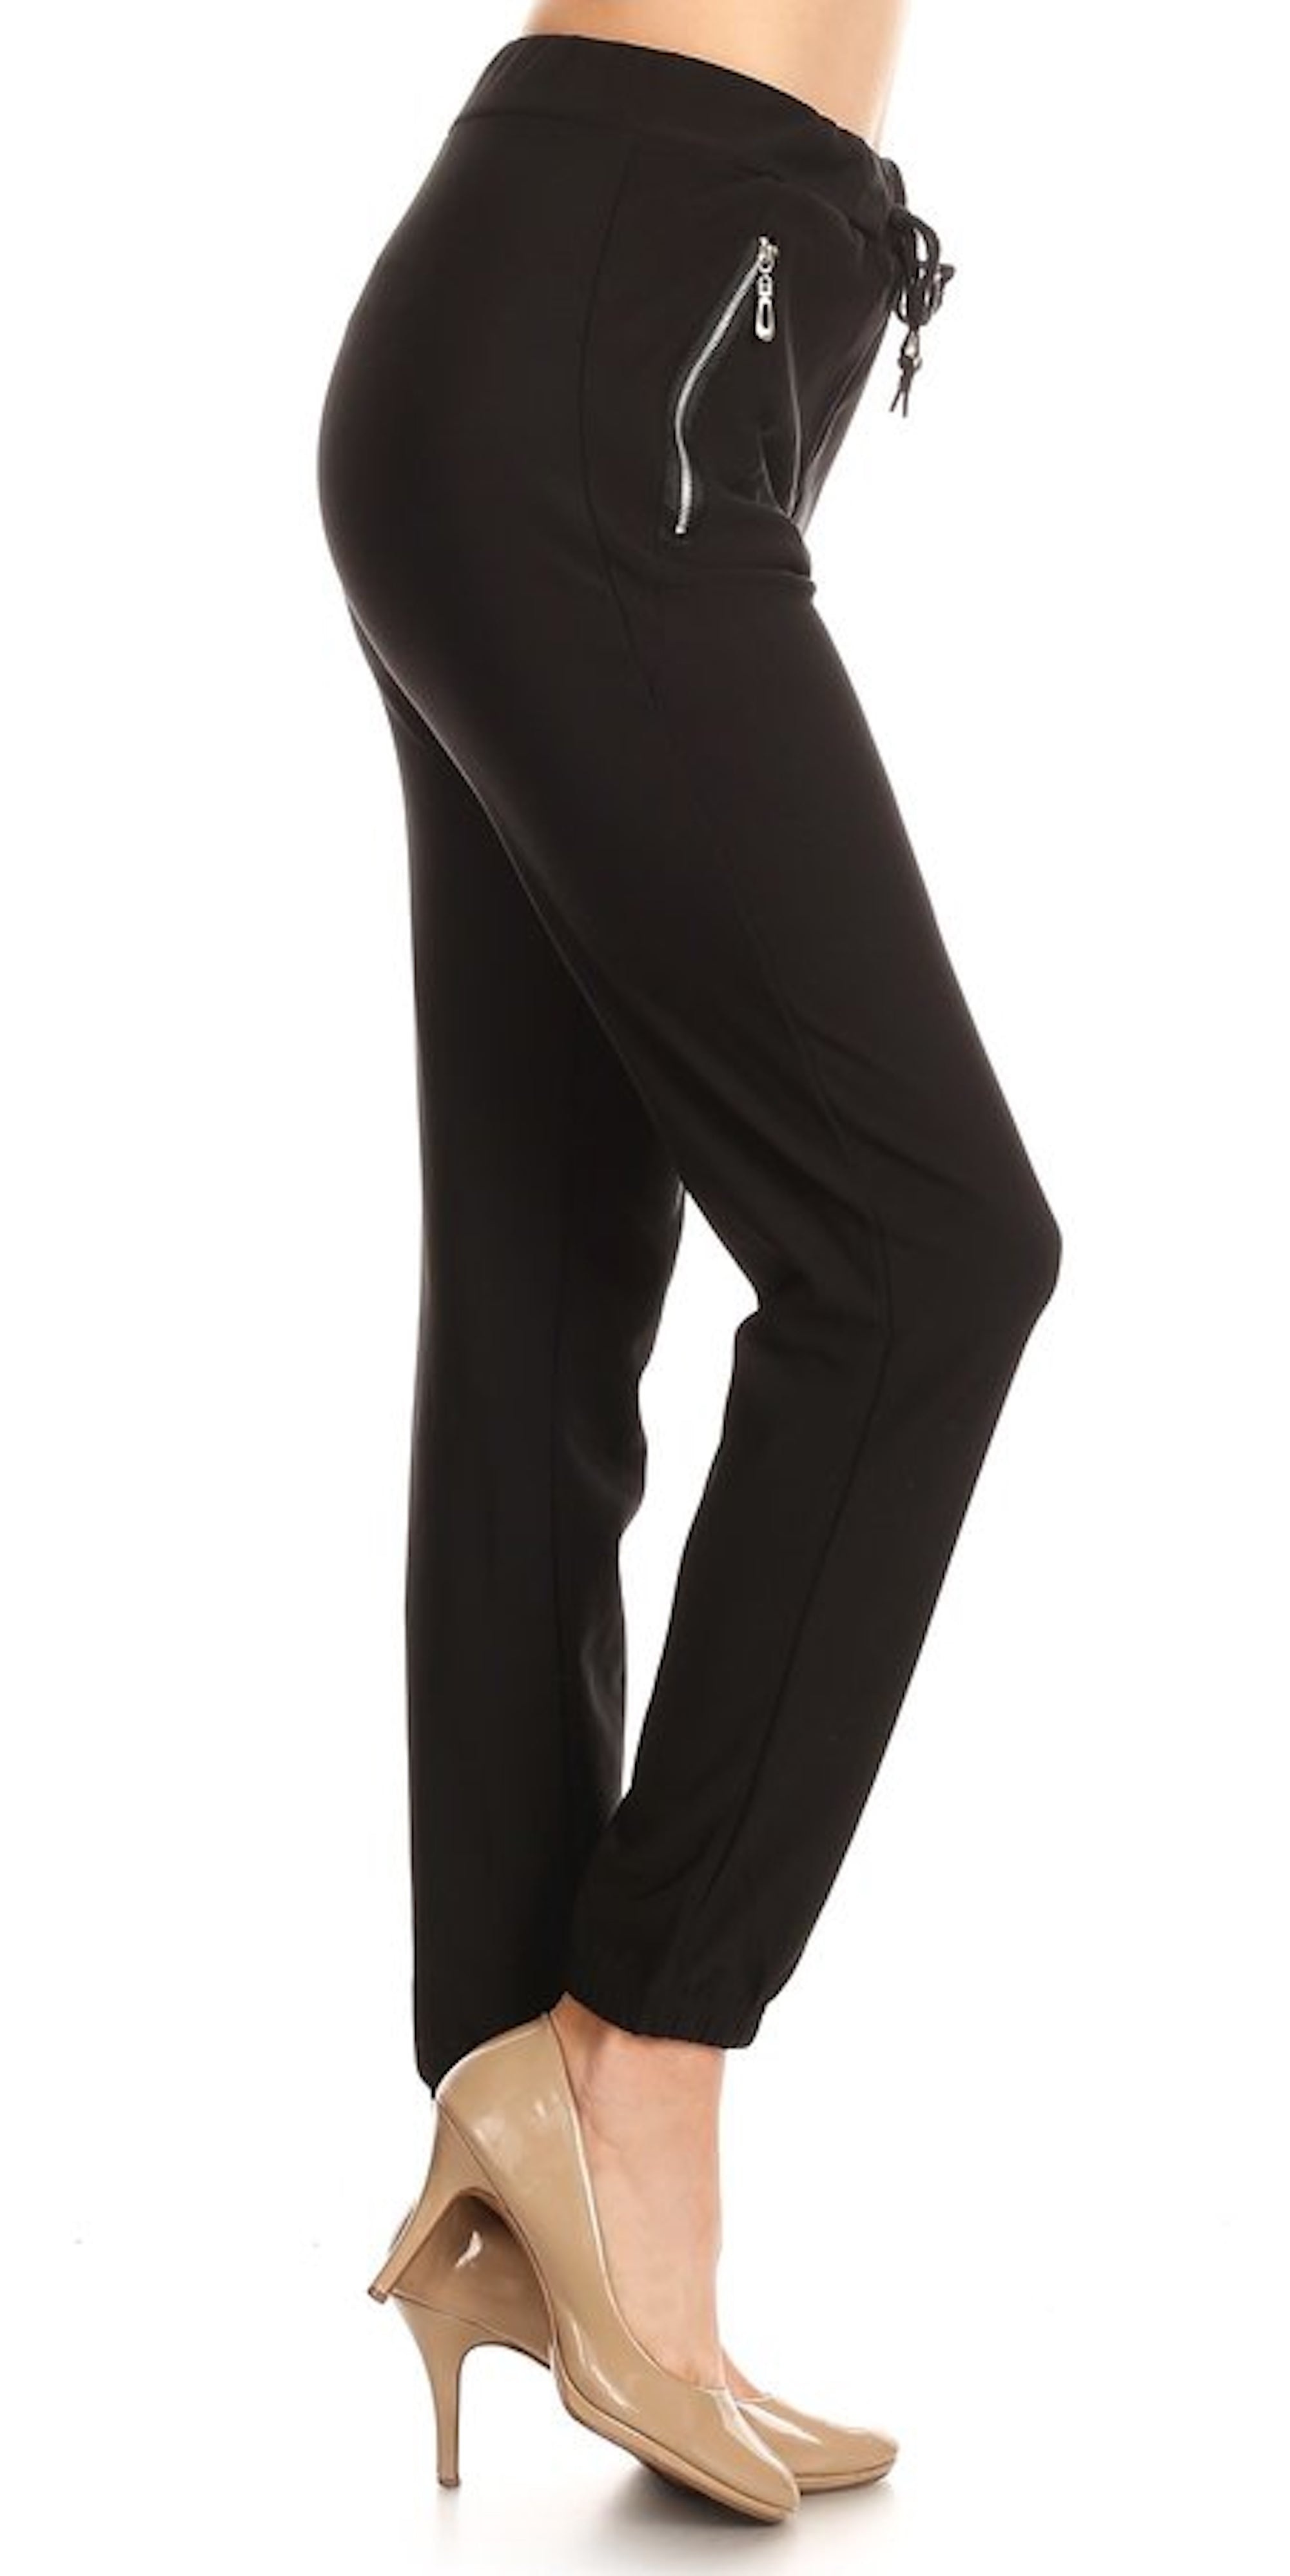 zipper fashion jogger pants black tie up fashion clothing woman trending style